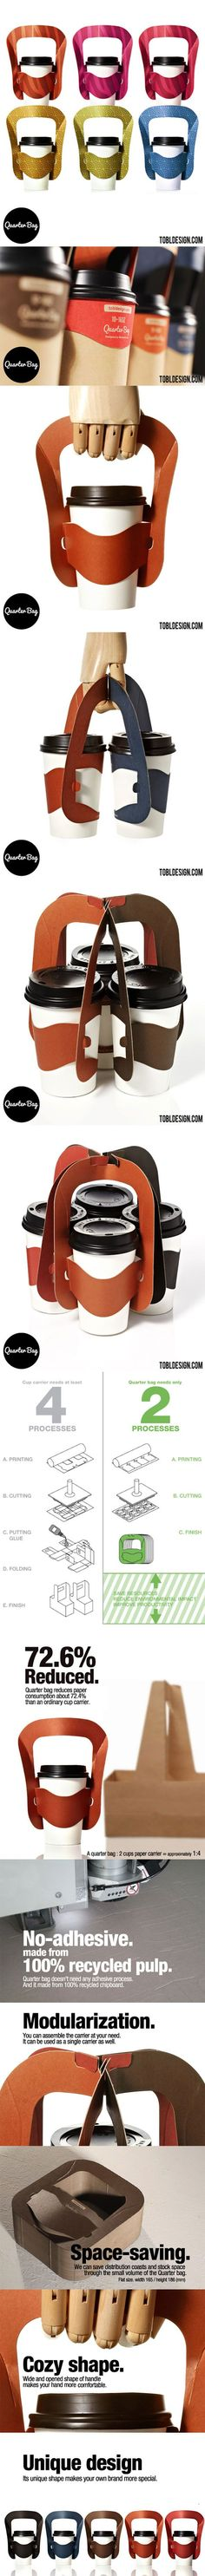 Quarter Bag  --Packaging of the World--    Fantastically designed new coffee cup holder concept. Now carrying 3 coffee cups at once won't suck and feel really unsteady in the holder. Looks gorgeous as well. #coffeecups